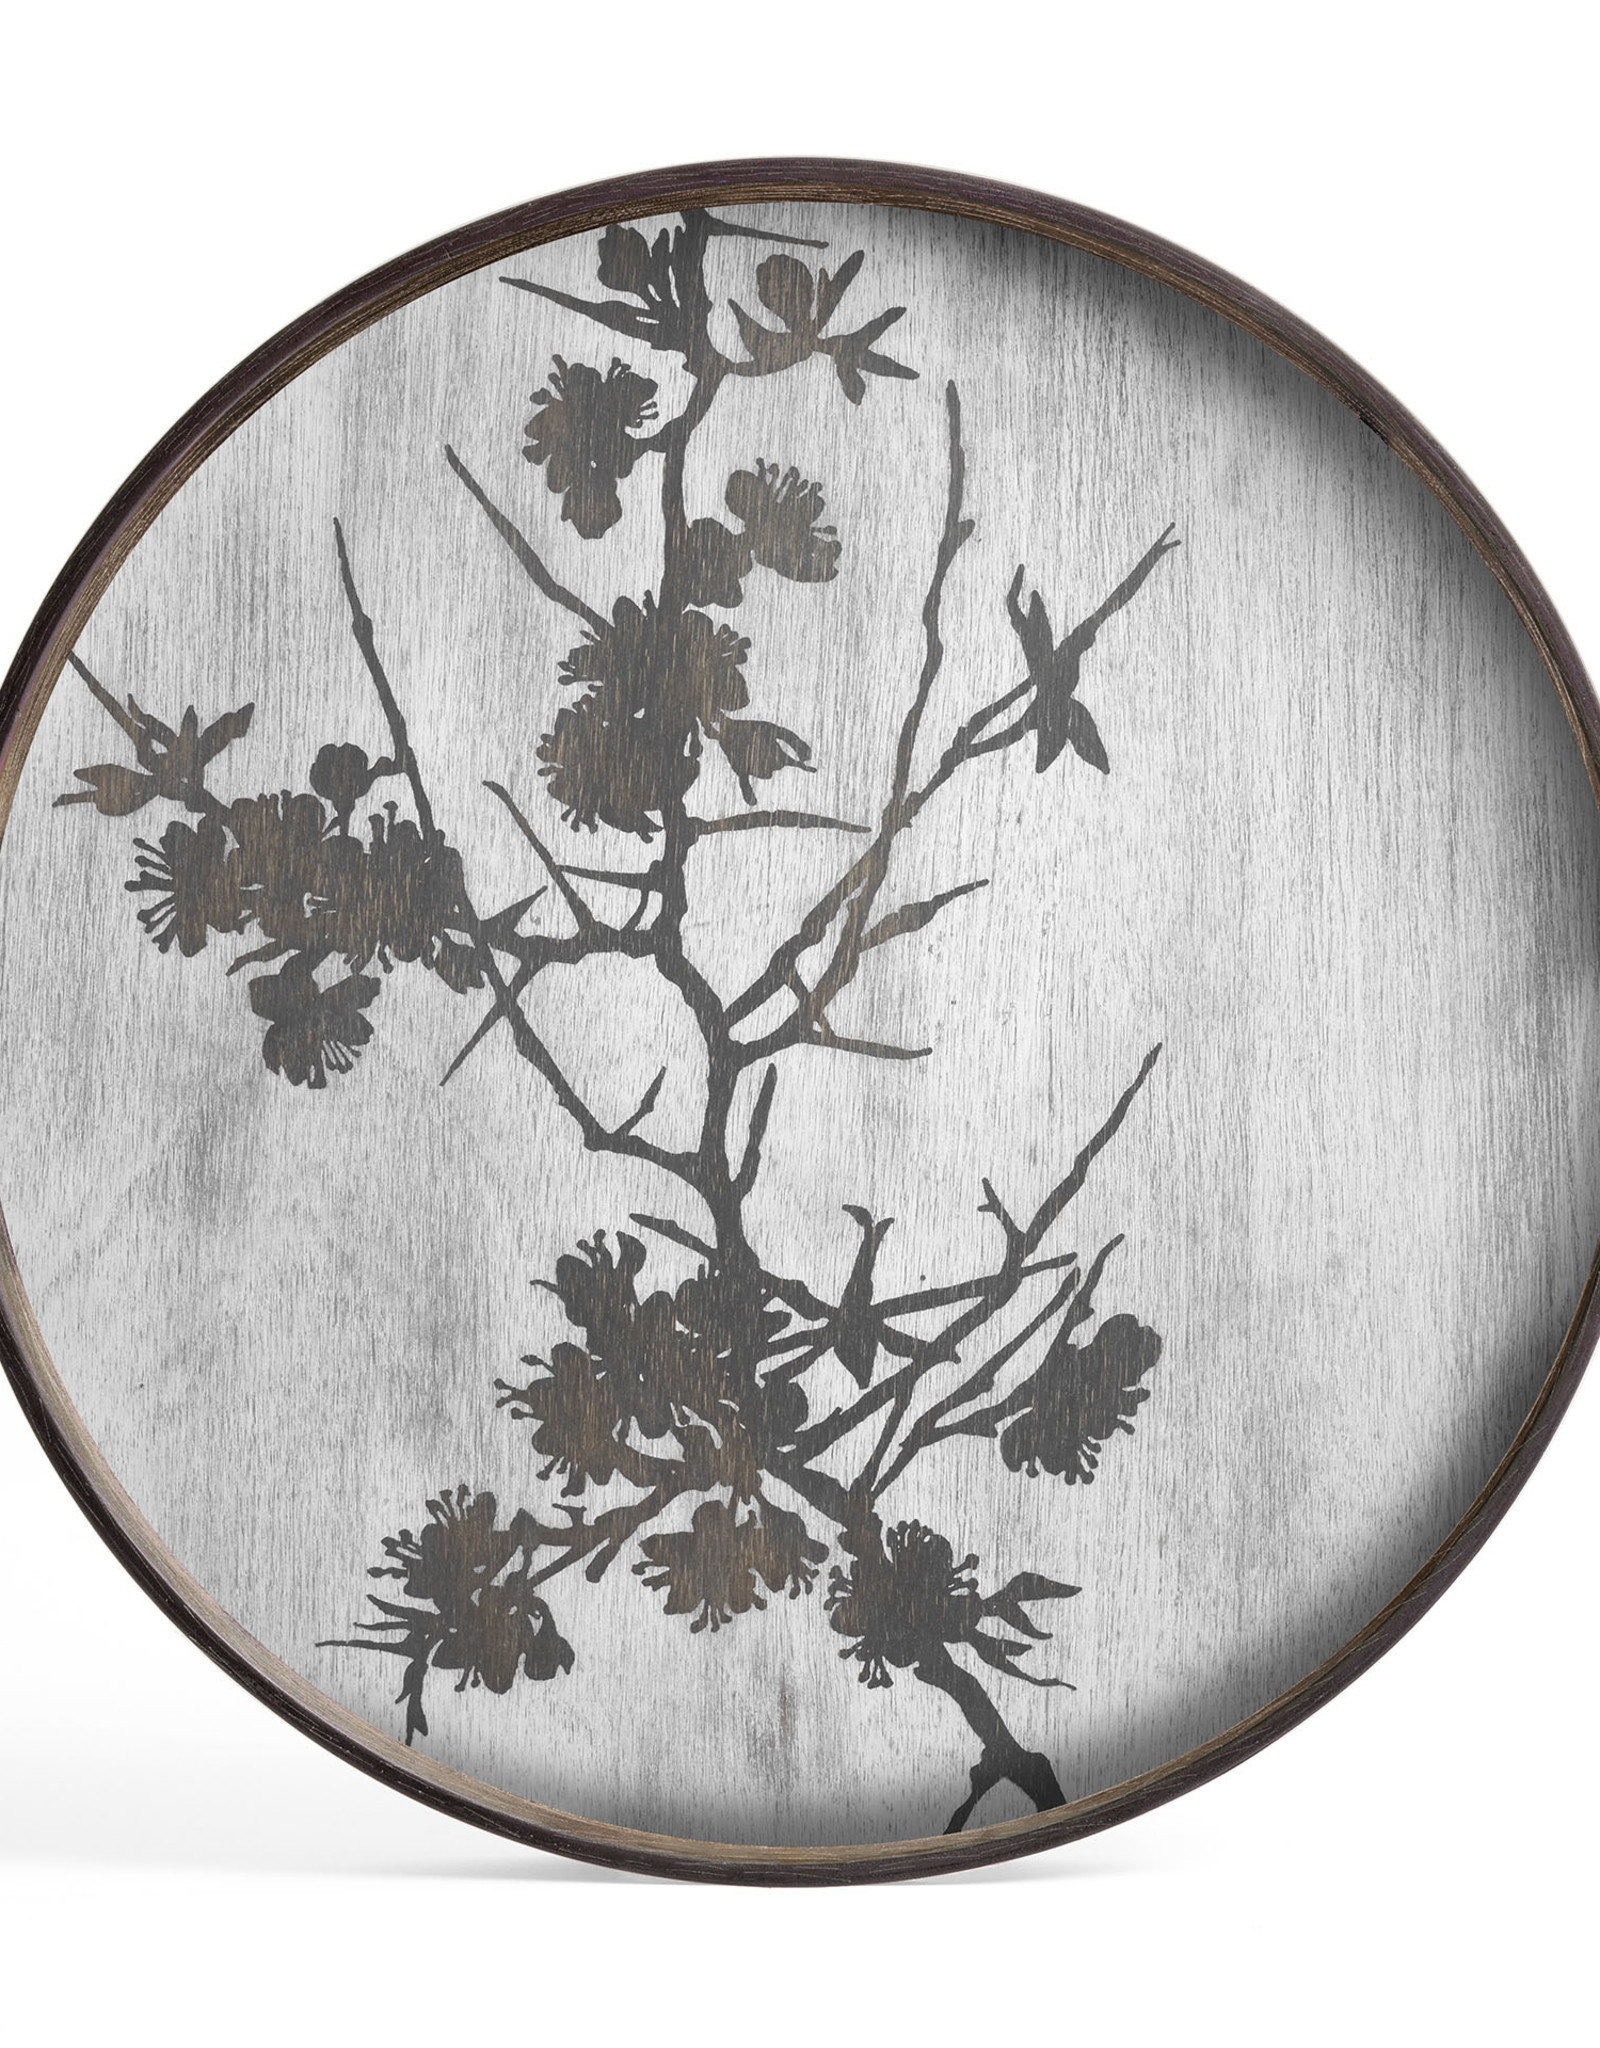 Blossom wooden tray - round - S 19 x 19 x 2